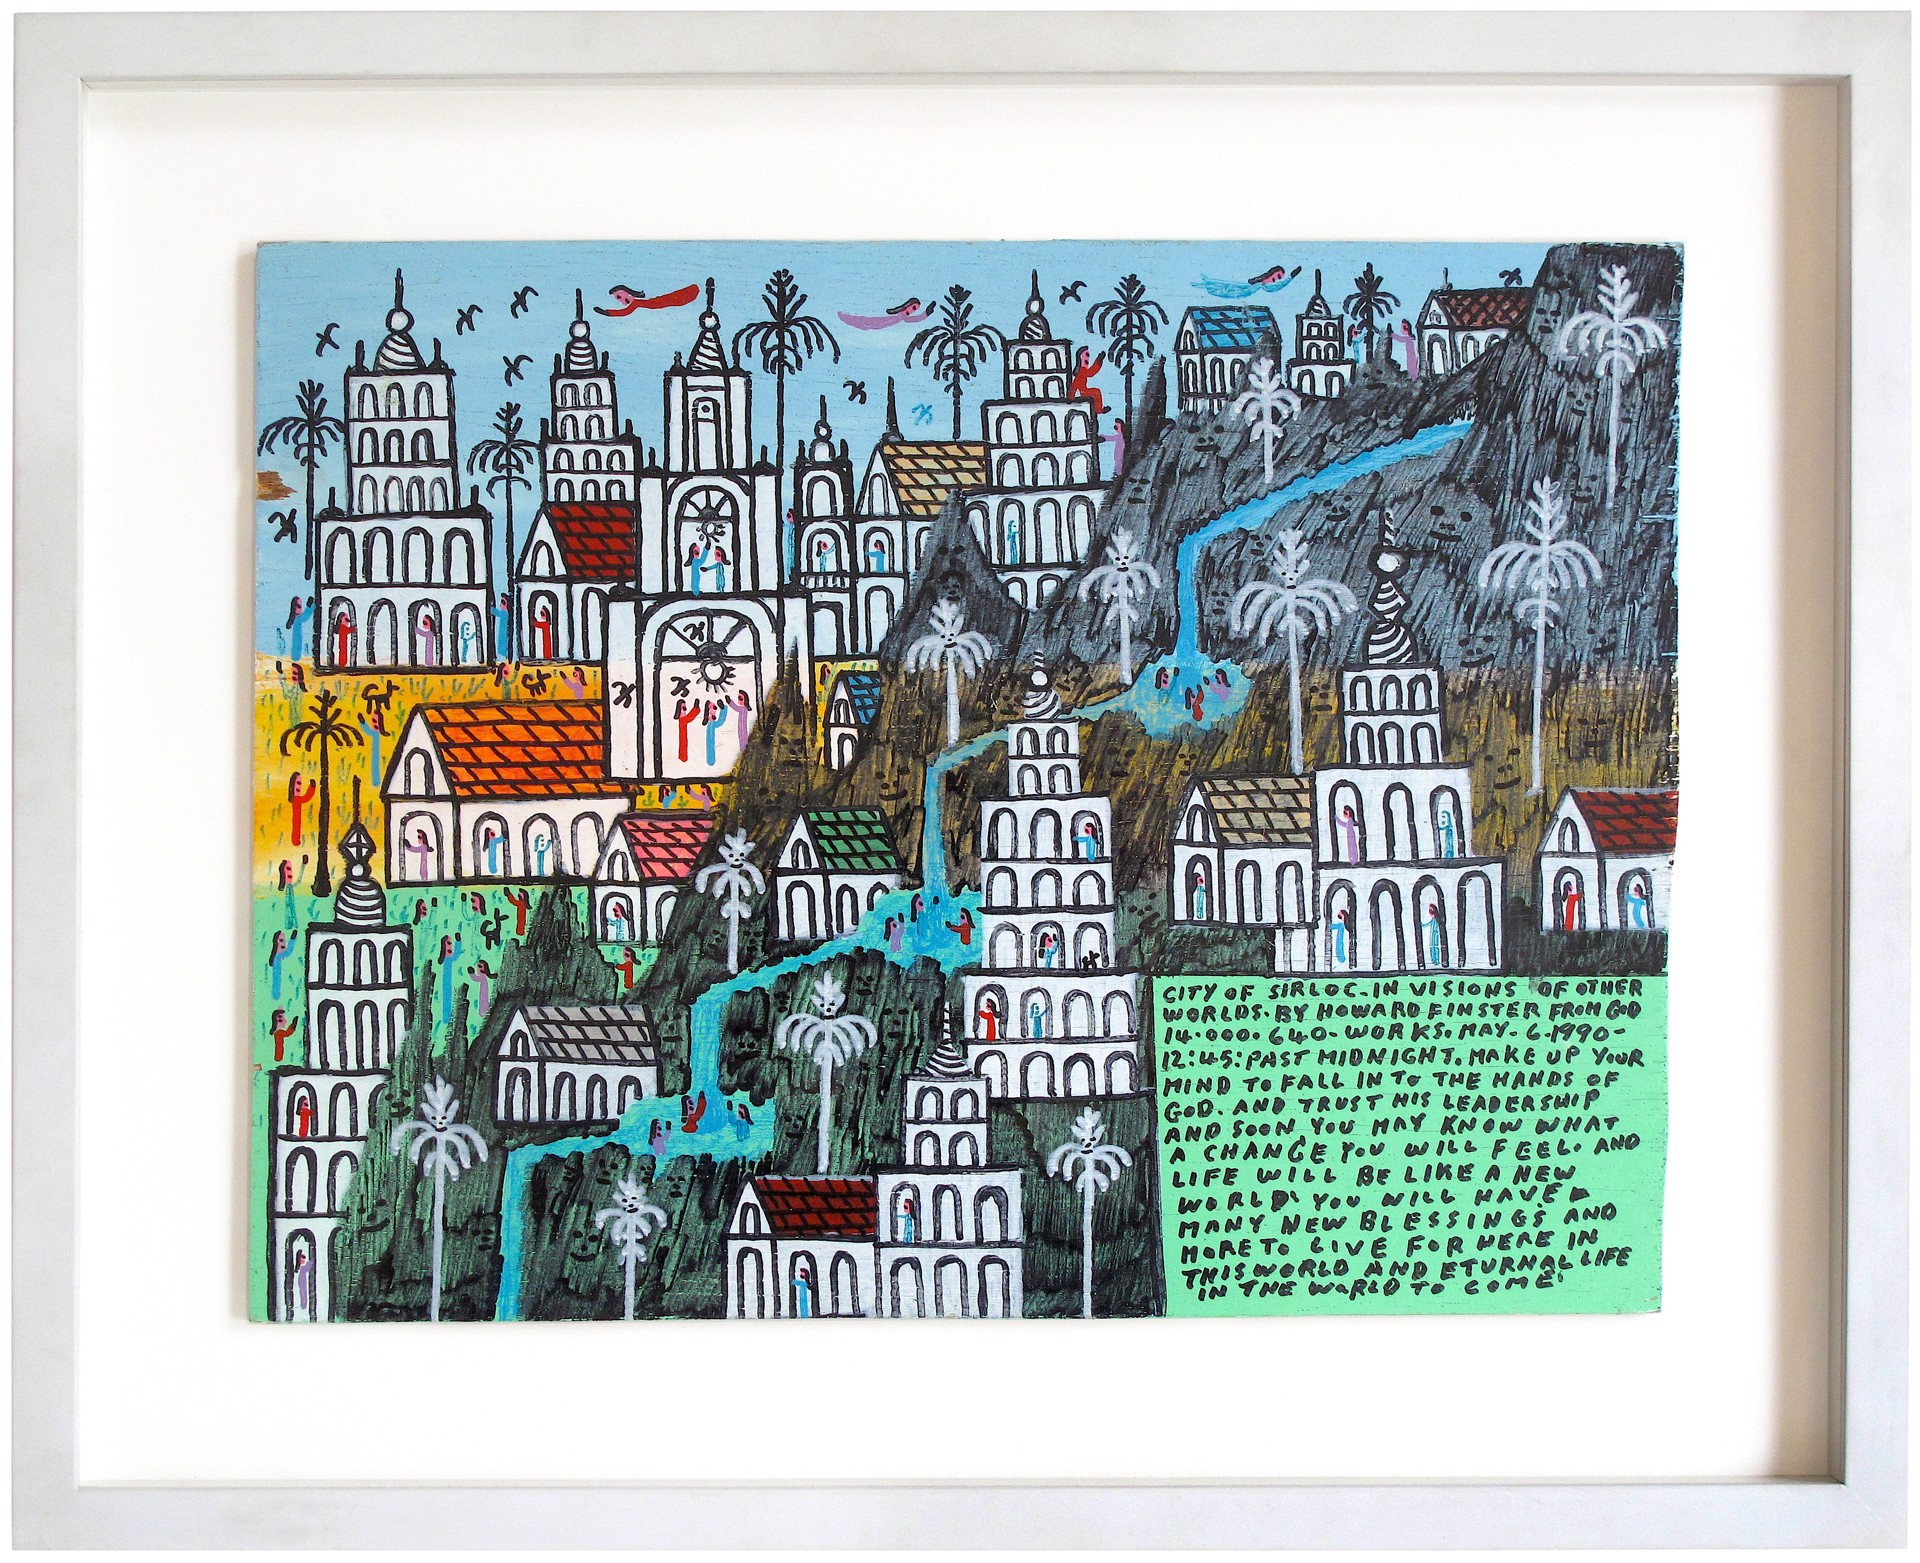 City of Sirloc by Howard Finster